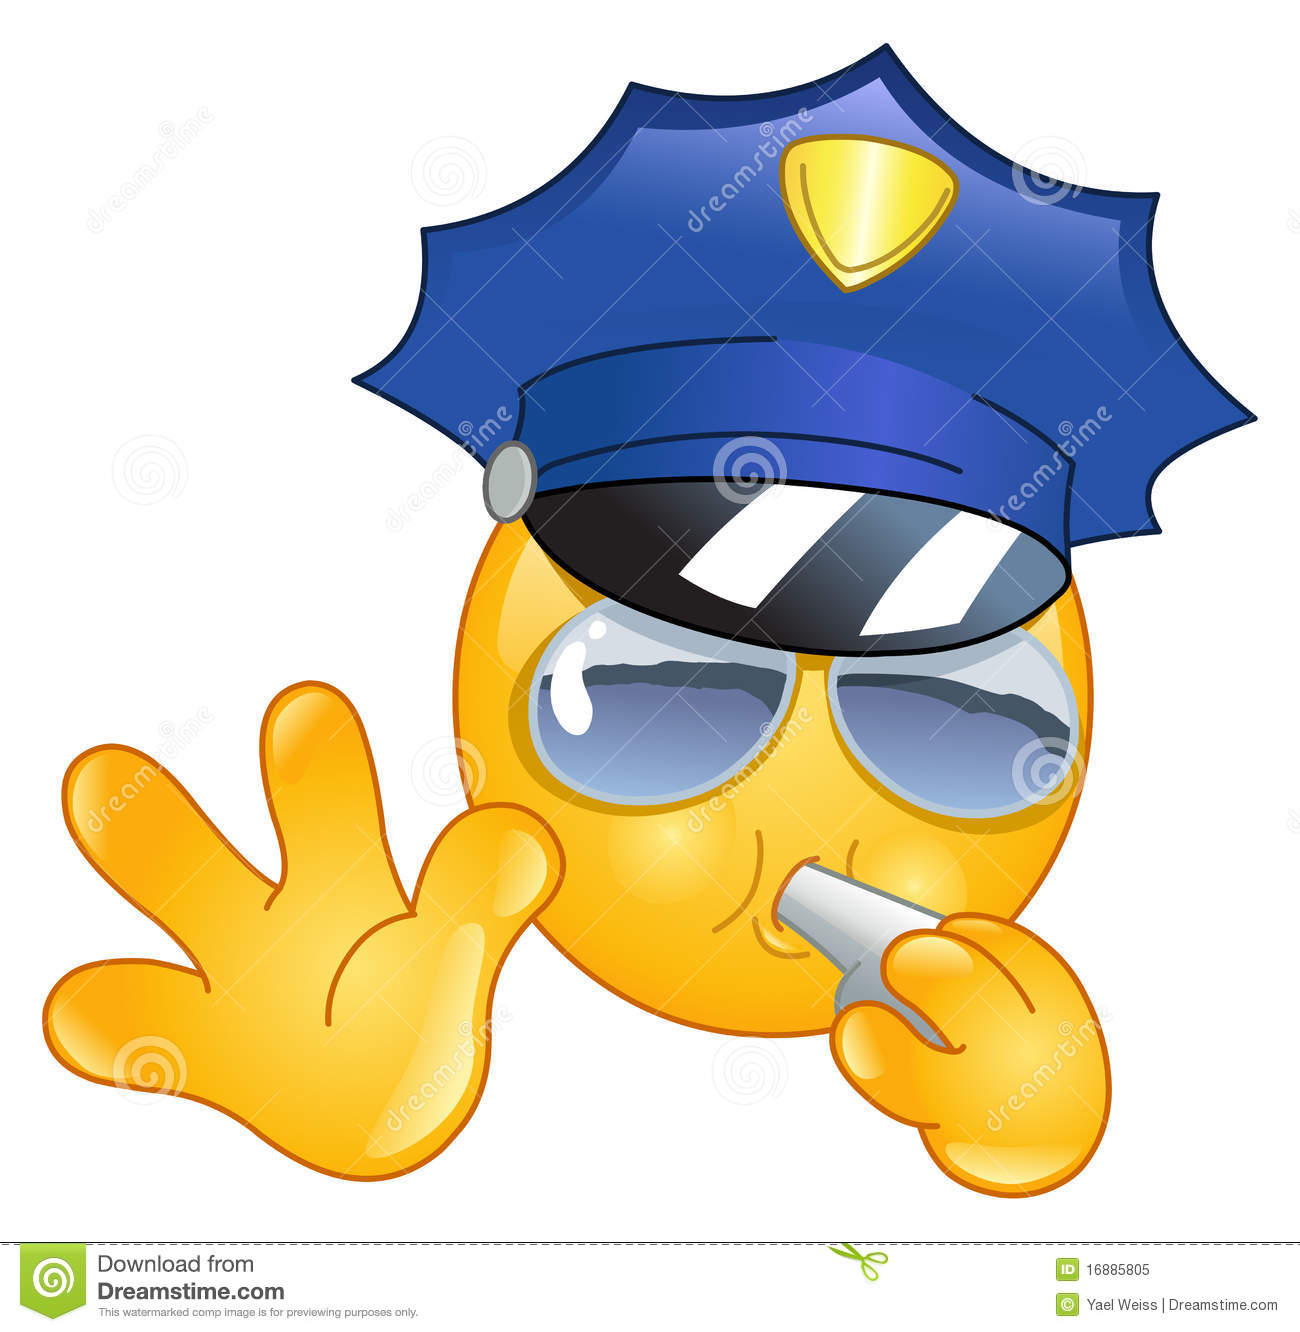 Policeman Emoticon Royalty Free Stock Photo - Image: 16885805